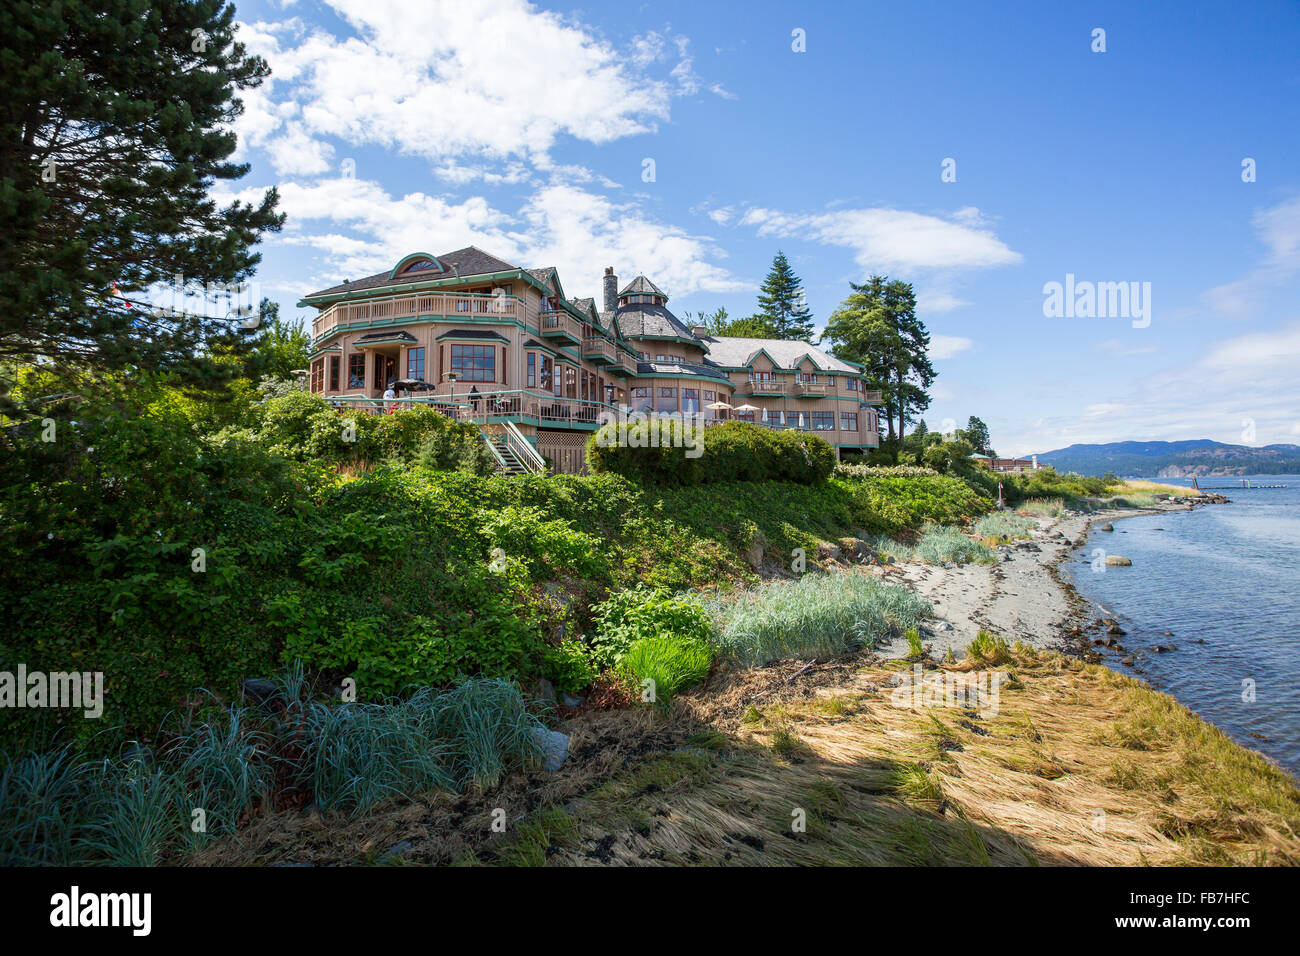 North America, Canada, British Columbia, Vancouver Island, Campbell River,  Painters Lodge